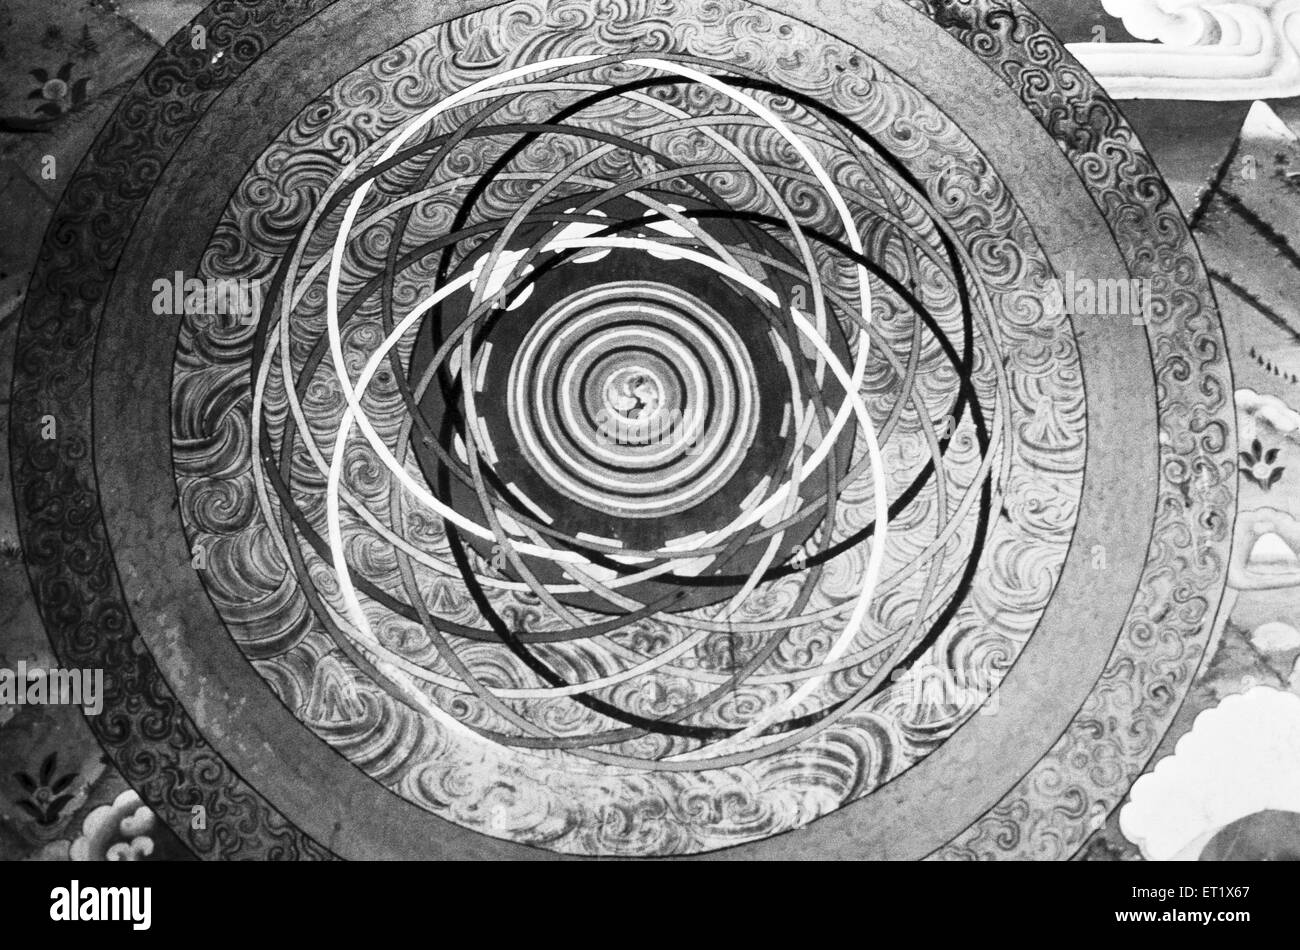 An abstruse mandala ; an aid to understand Buddhist philosophy shot at the monastery in Paro ; Bhutan - Stock Image